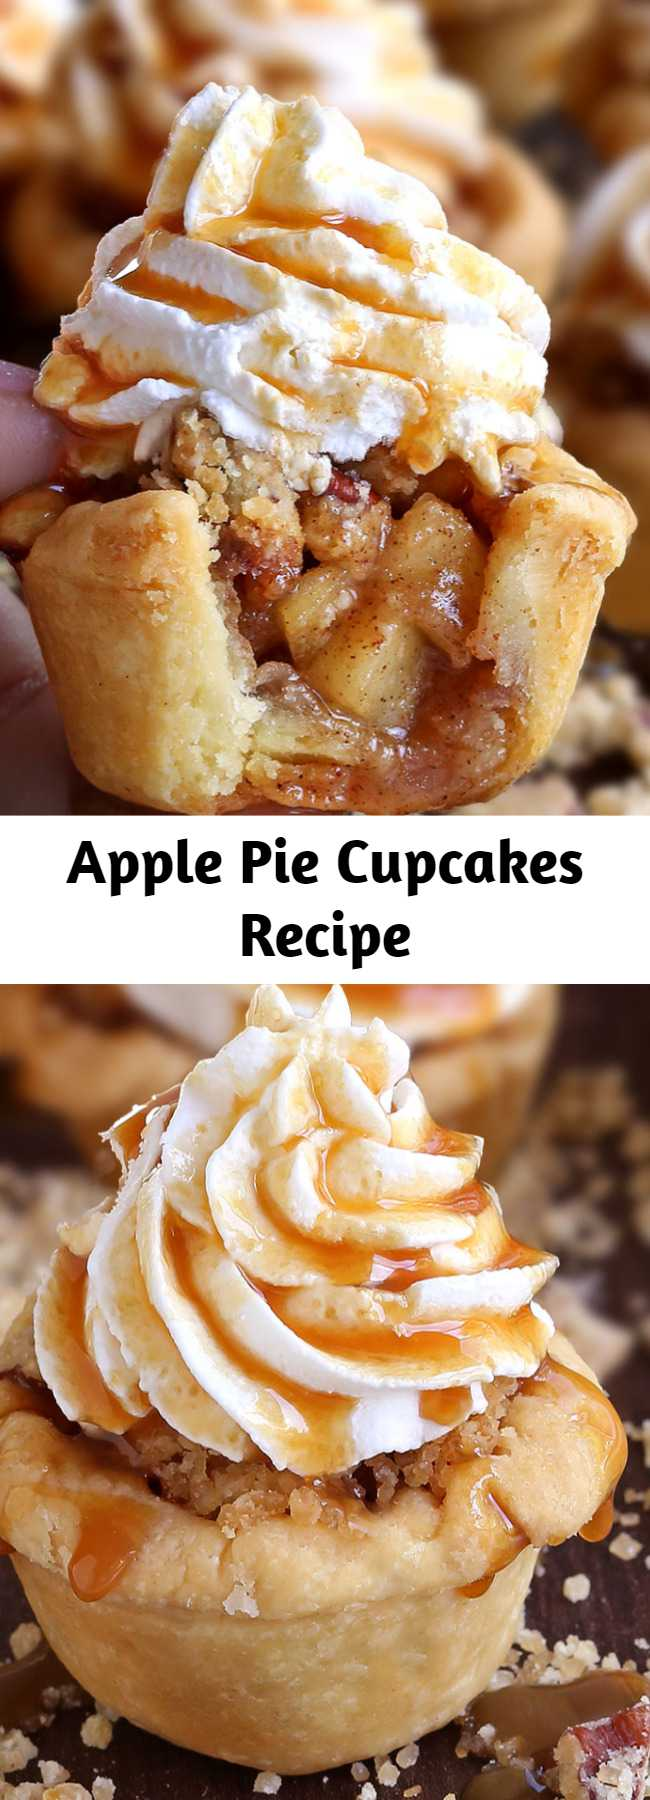 Apple Pie Cupcakes Recipe - When you don't feel like having an apple pie then these Apple Pie Cupcakes are just the best alternative that you can get. With press-in crusts, easy apple pie filling and a simple crumb topping, these cupcake-sized desserts don't require any special rolling, weaving, or fluting skills to create impressive little treats.